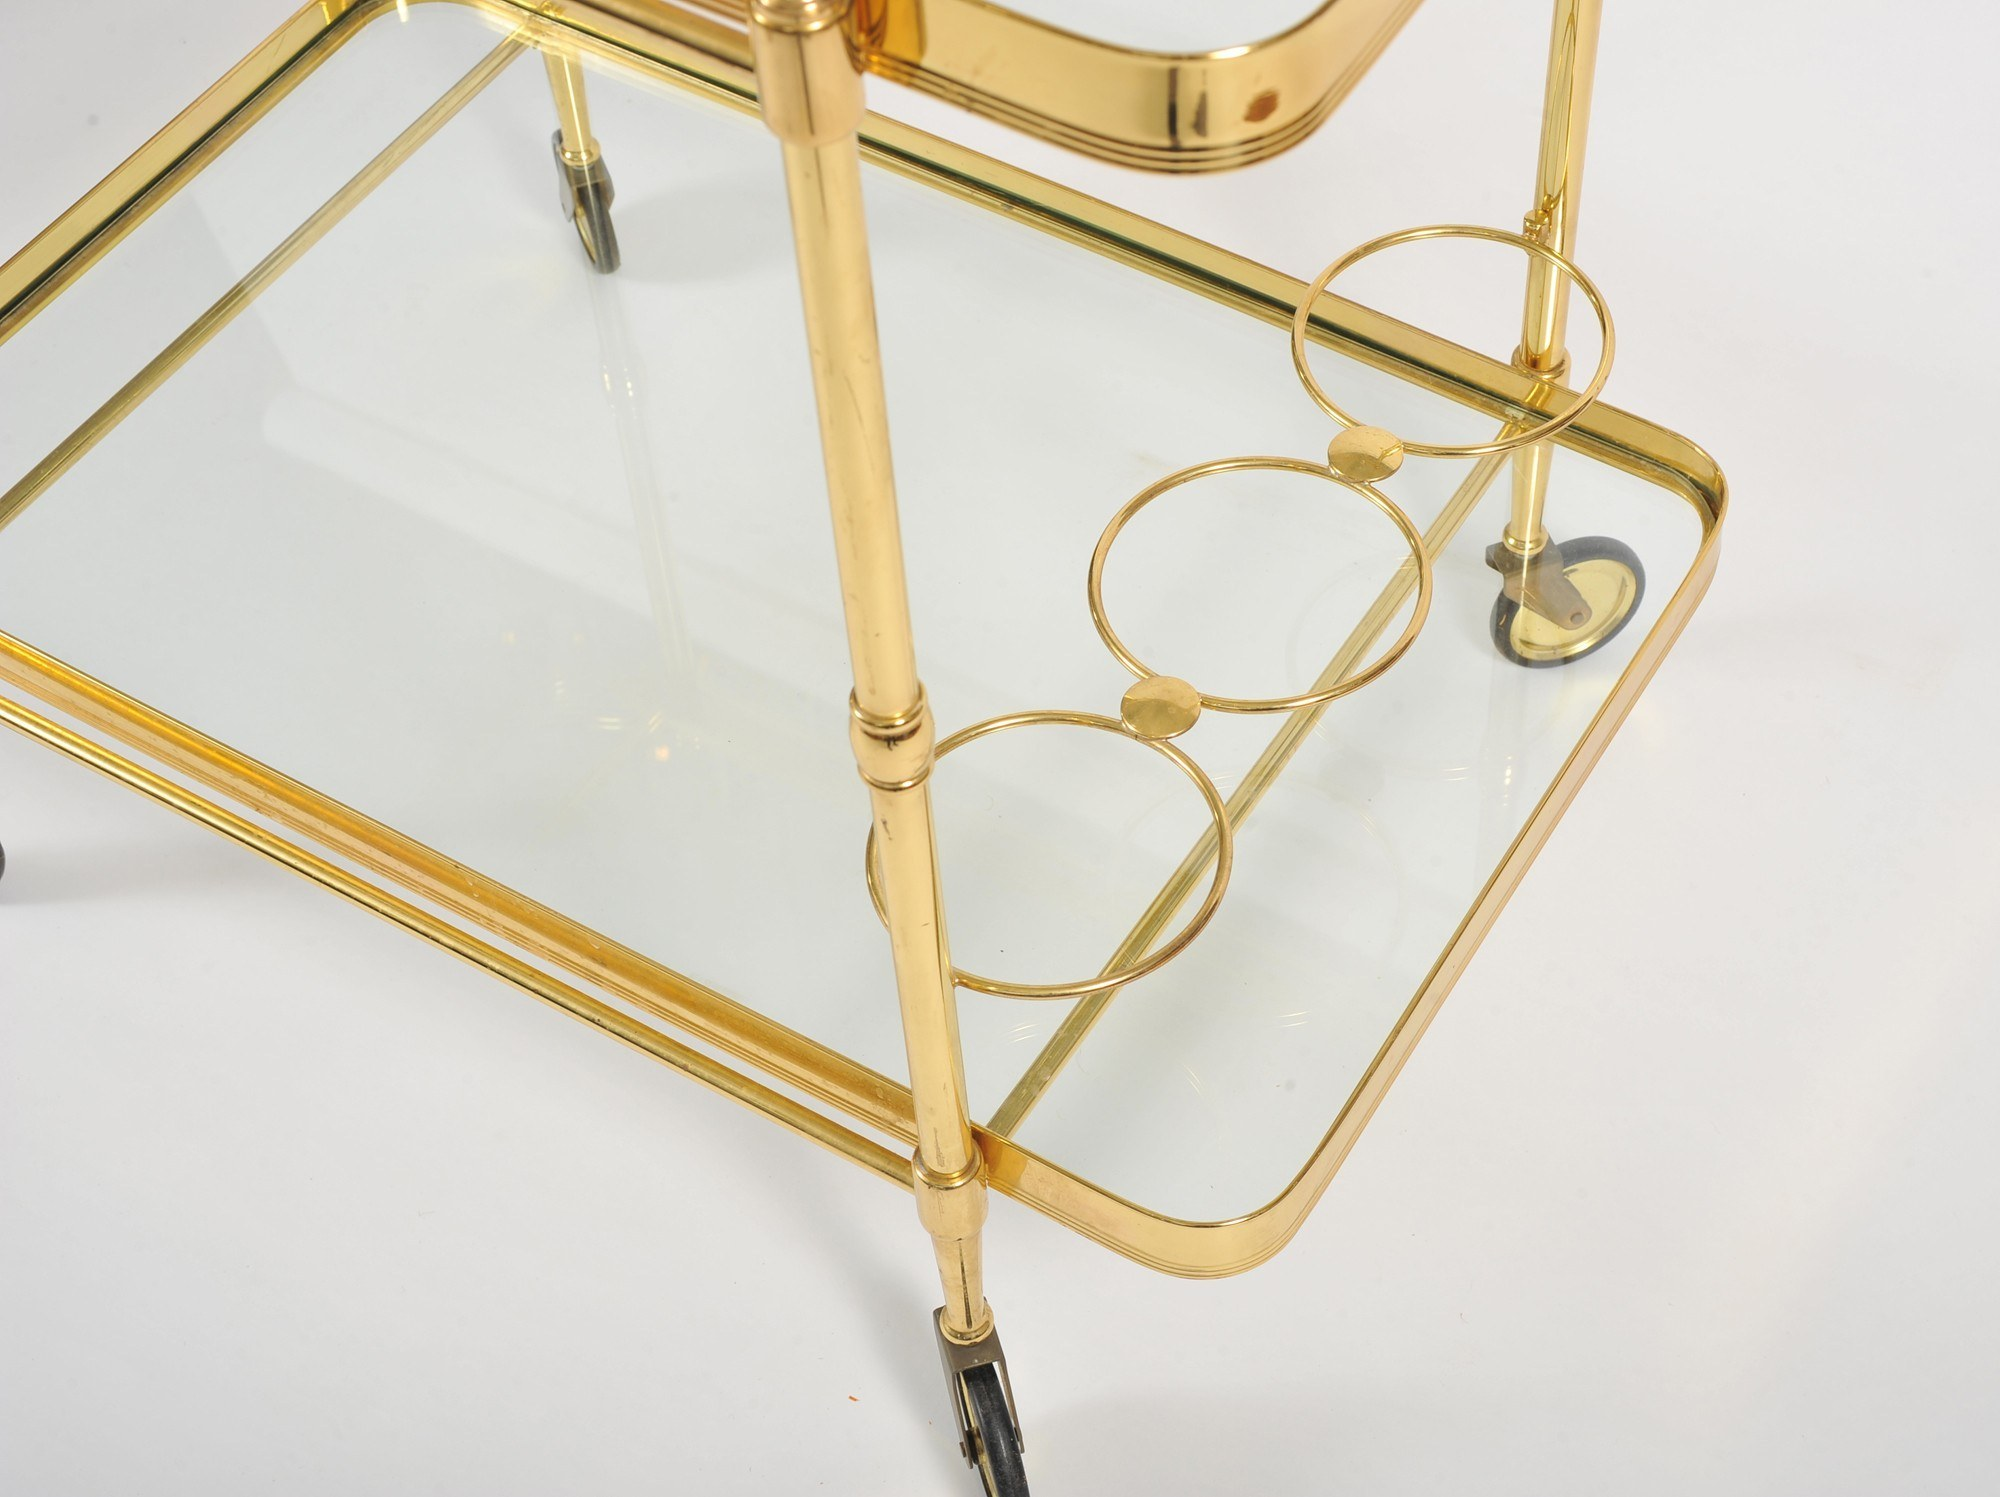 Valerie Wade Ams656 1950S Italian Brass Drinks Trolley 05